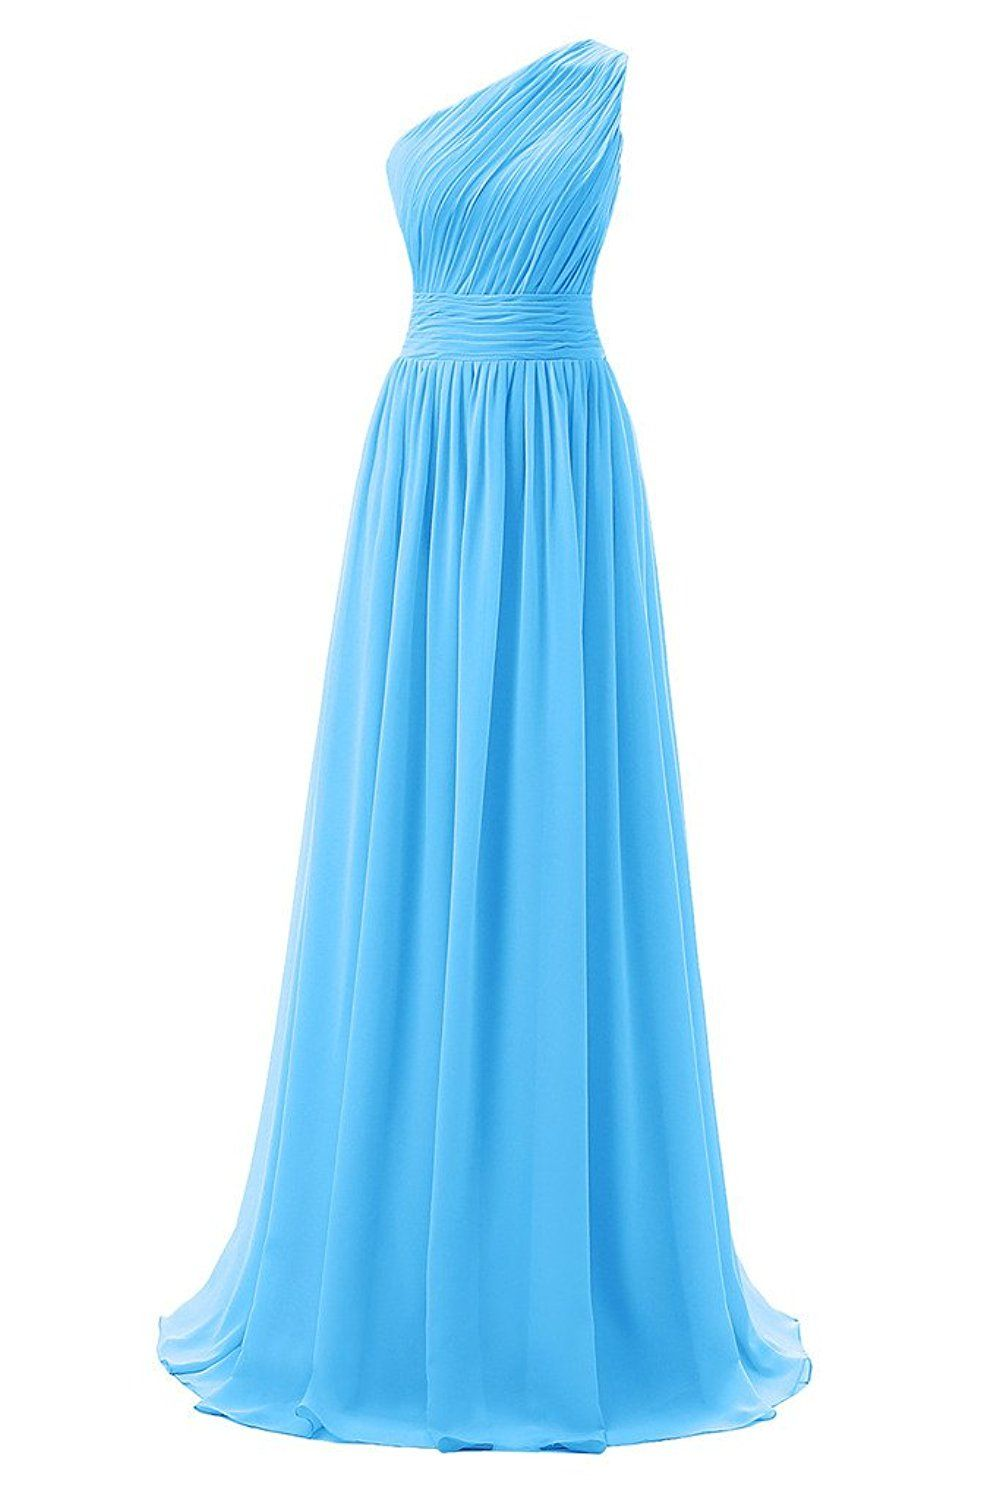 Dressever womenus long one shoulder bridesmaid chiffon prom evening